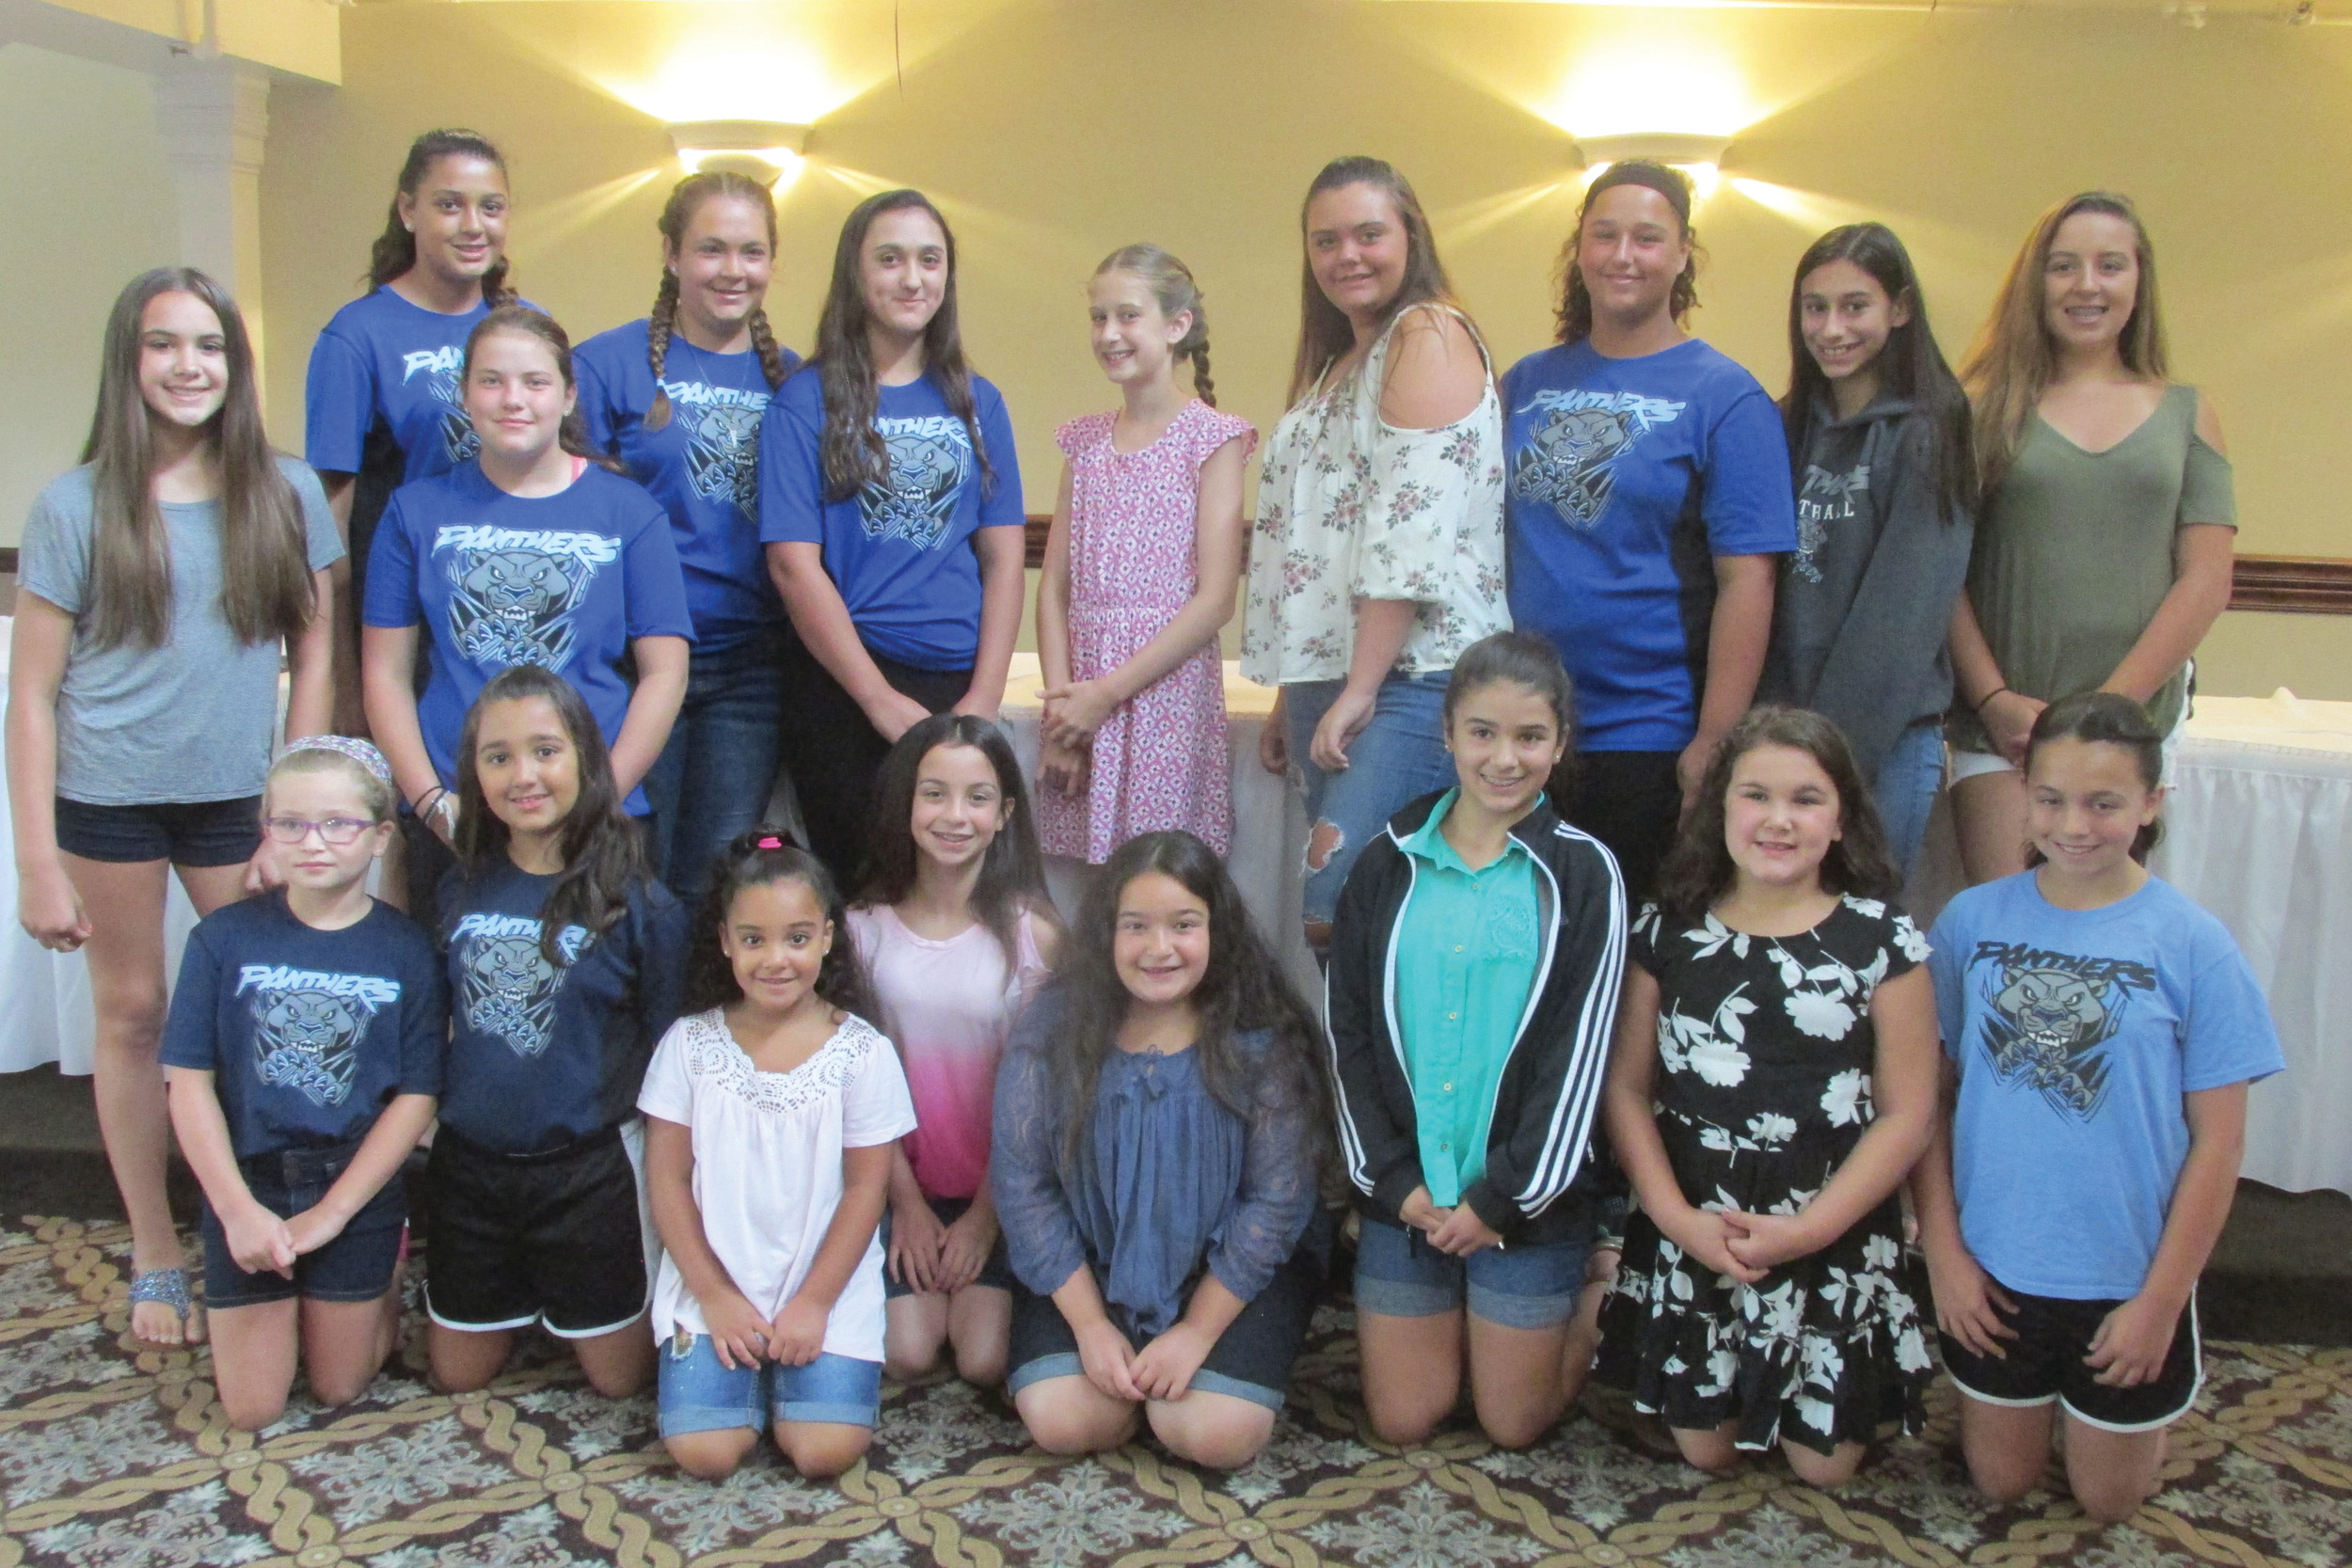 PROUD PARTICIPANTS: These are just some of the girls who were treated to a fun, food and friendship-filled 3rd annual Johnston Girls Softball League banquet last Saturday inside Cranston Country Club.